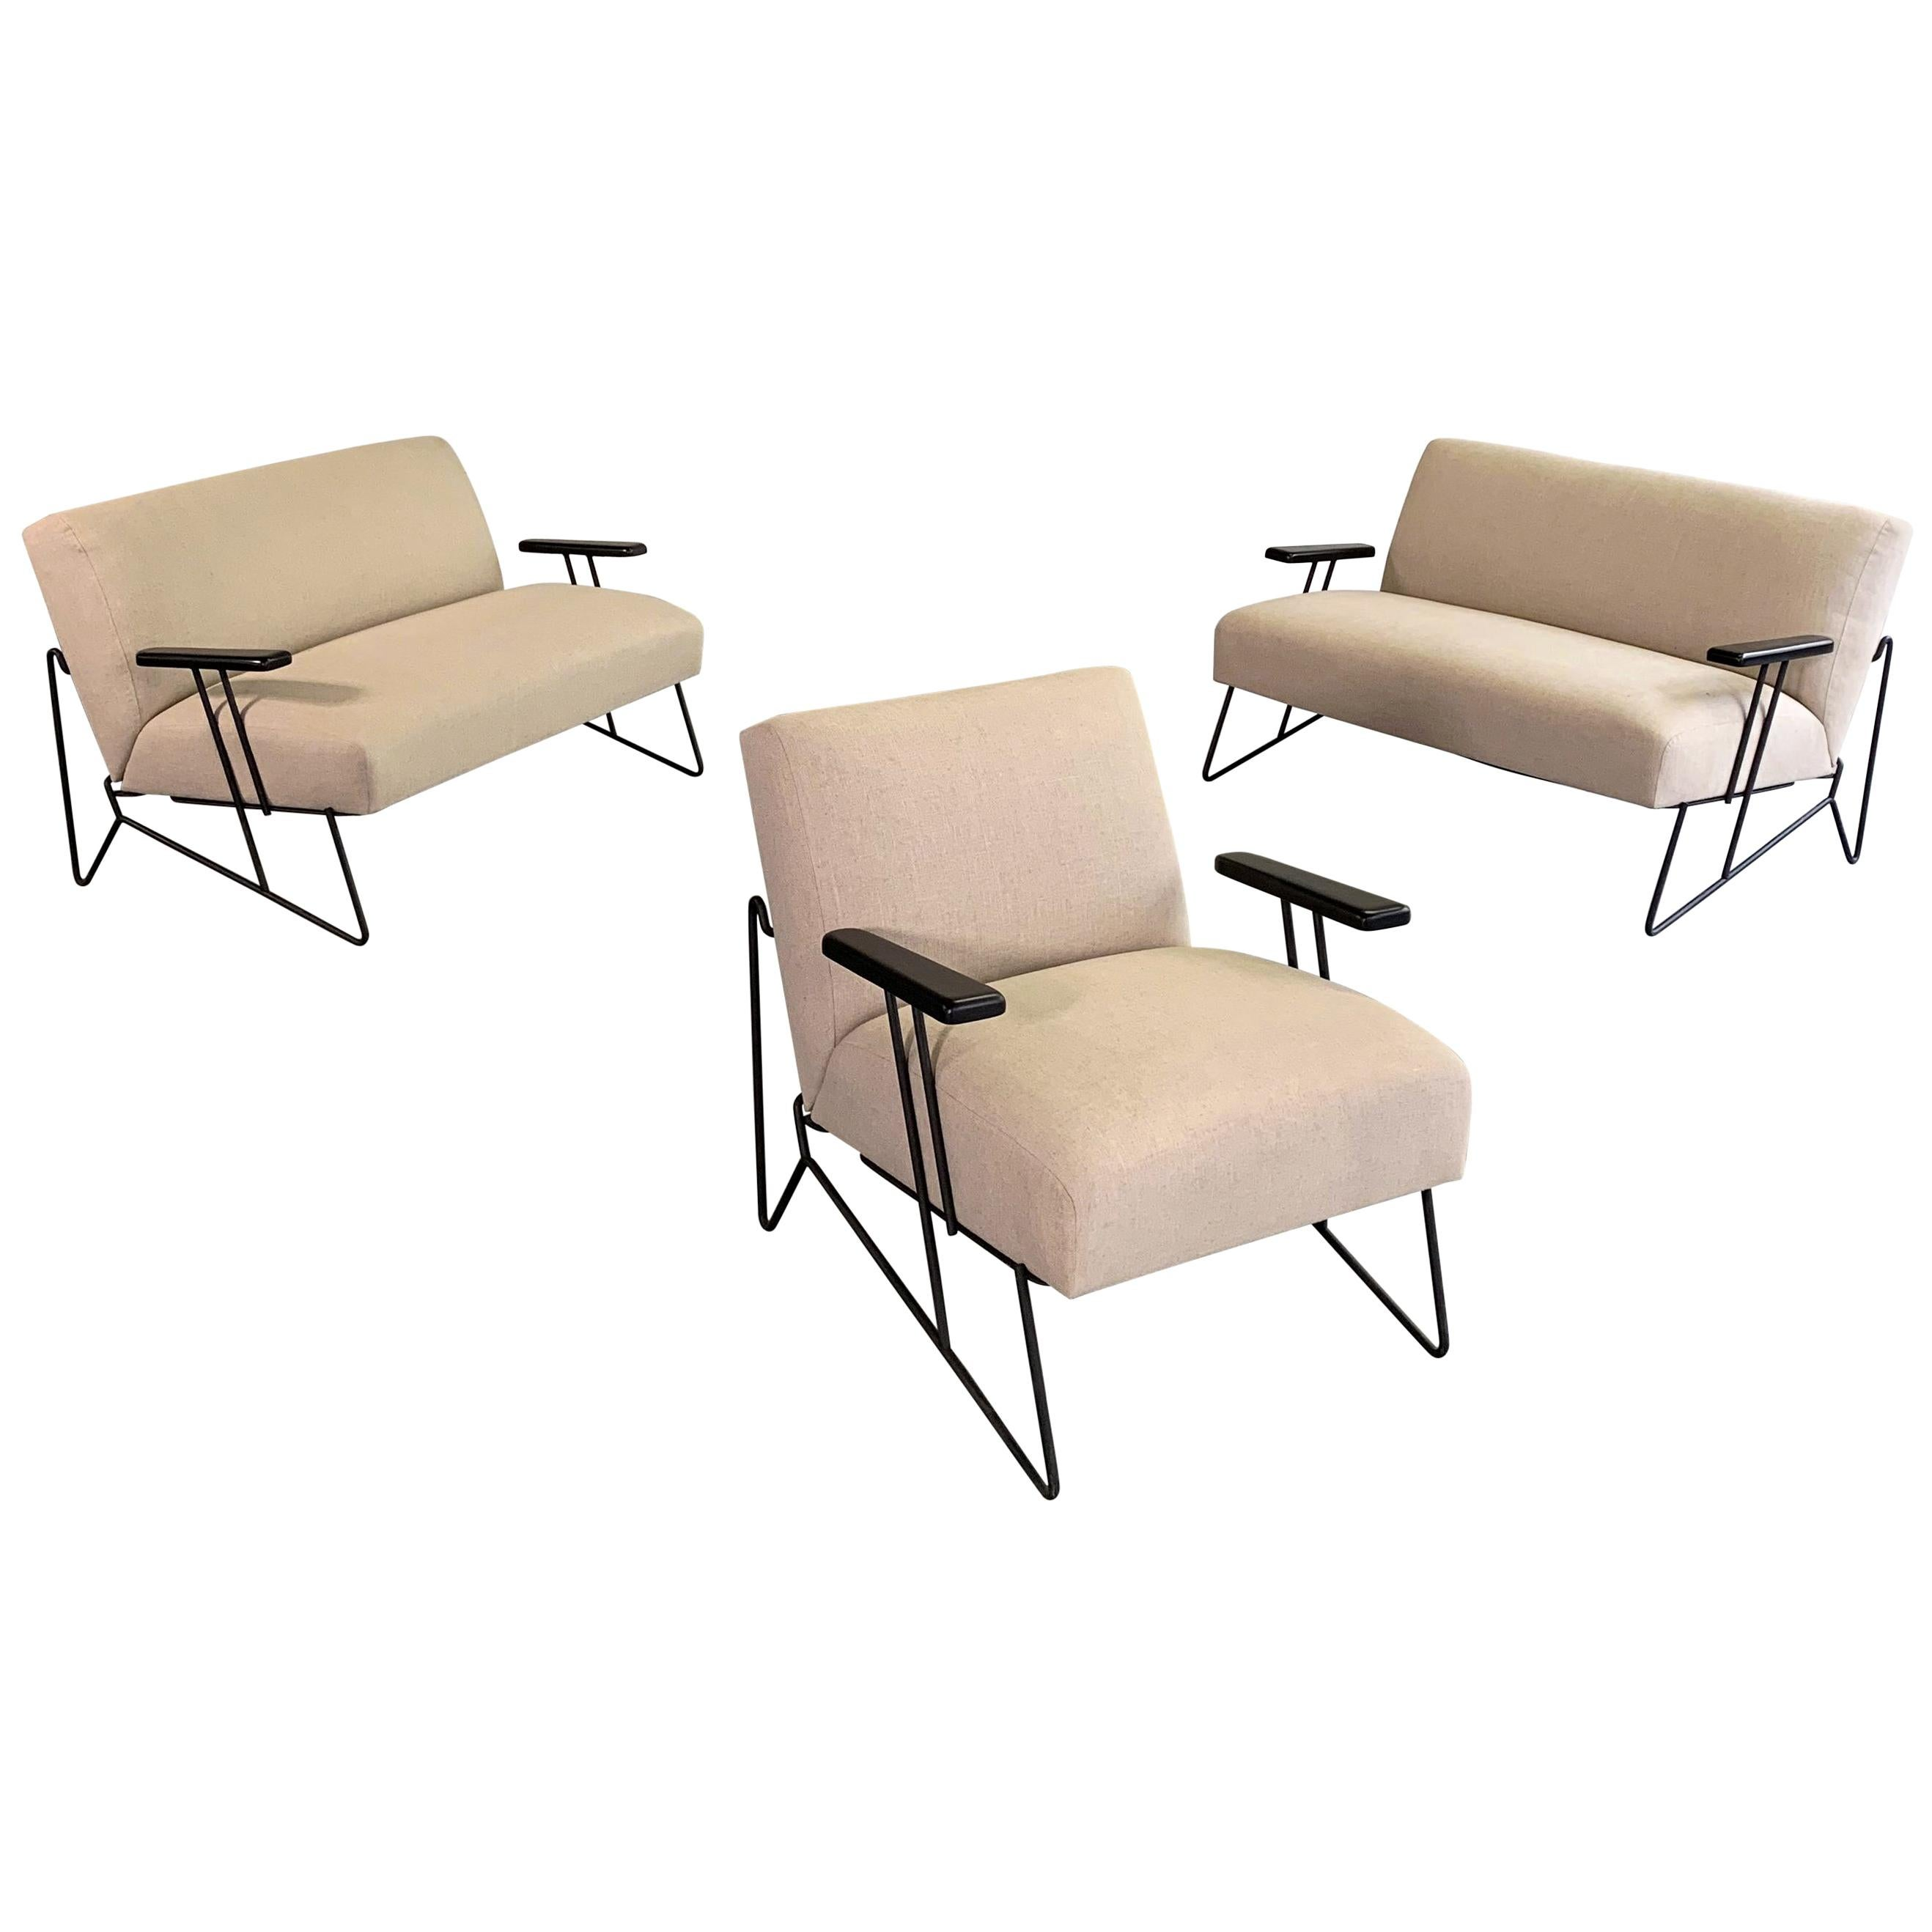 Dan Johnson for Pacific Iron Settees and Lounge Chair Set